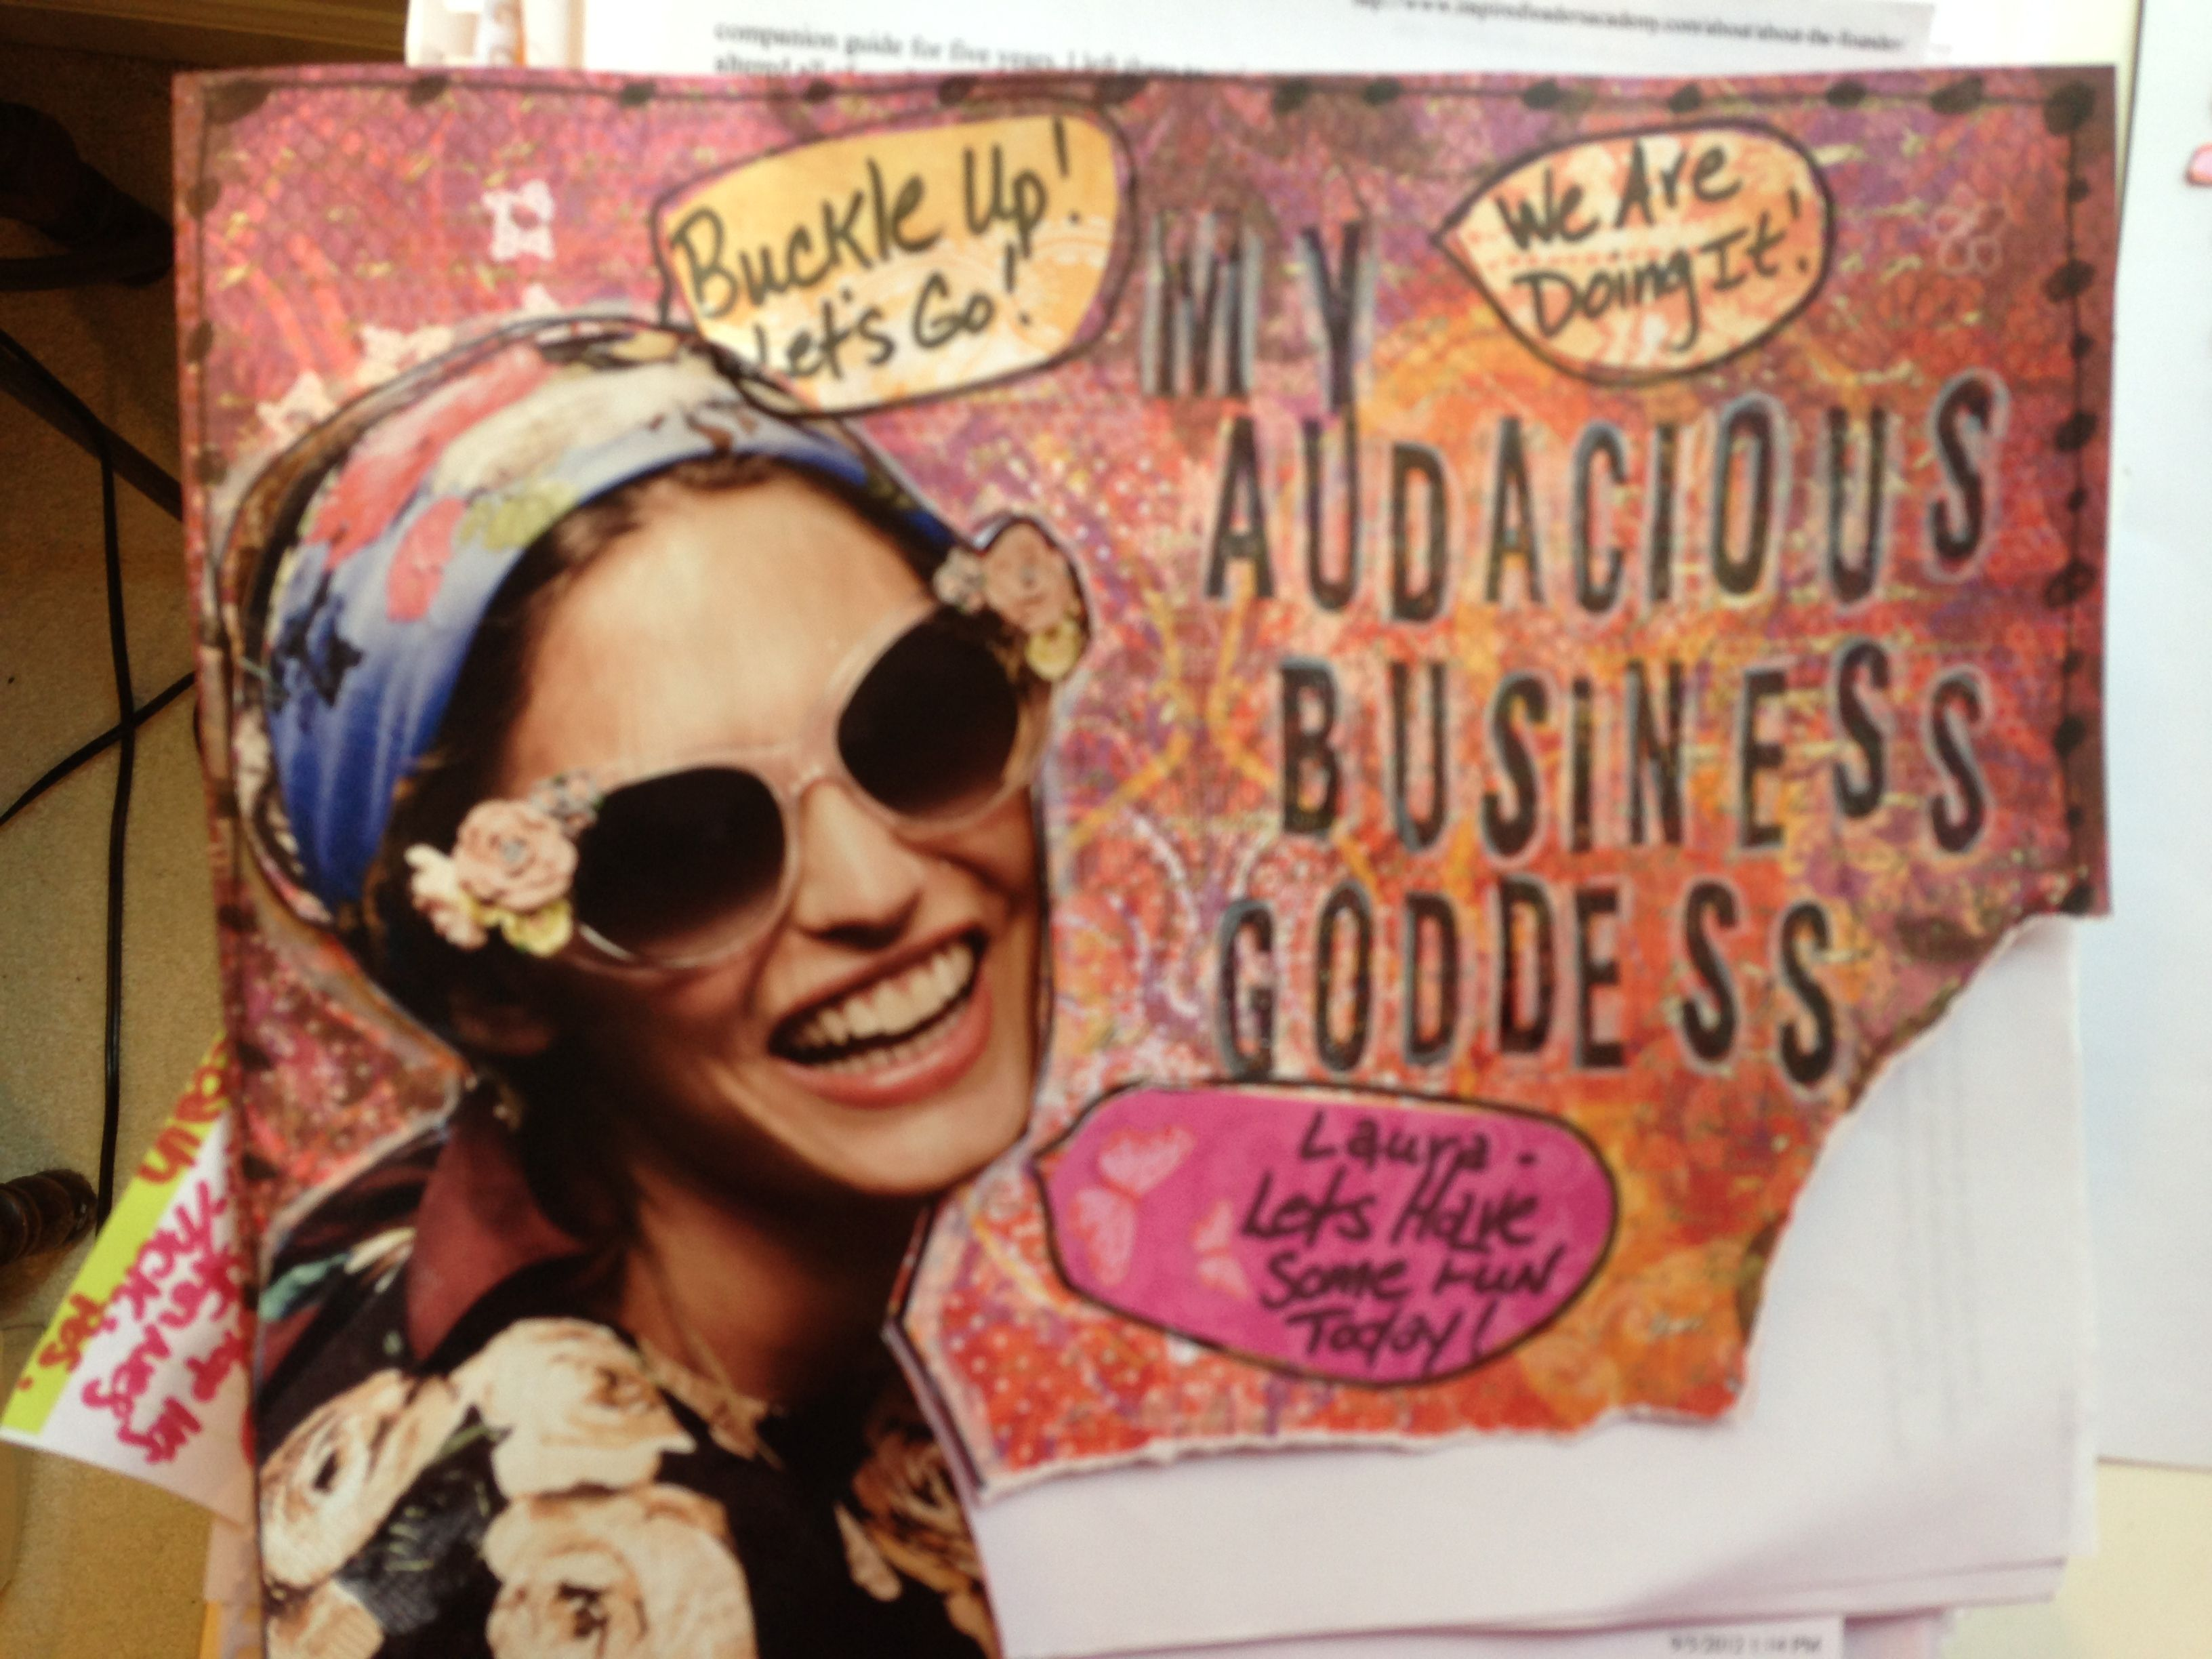 What does your Audacious Business Goddess say to you in those grounded, wise moments?  What are her whispers?  What does she fiercely stand for?    These are powerful creative tools for your life & biz!  You'll create more of this in 2014 in the Courageous Creativity in Biz Mastermind.    www.JoyfulBusiness.com